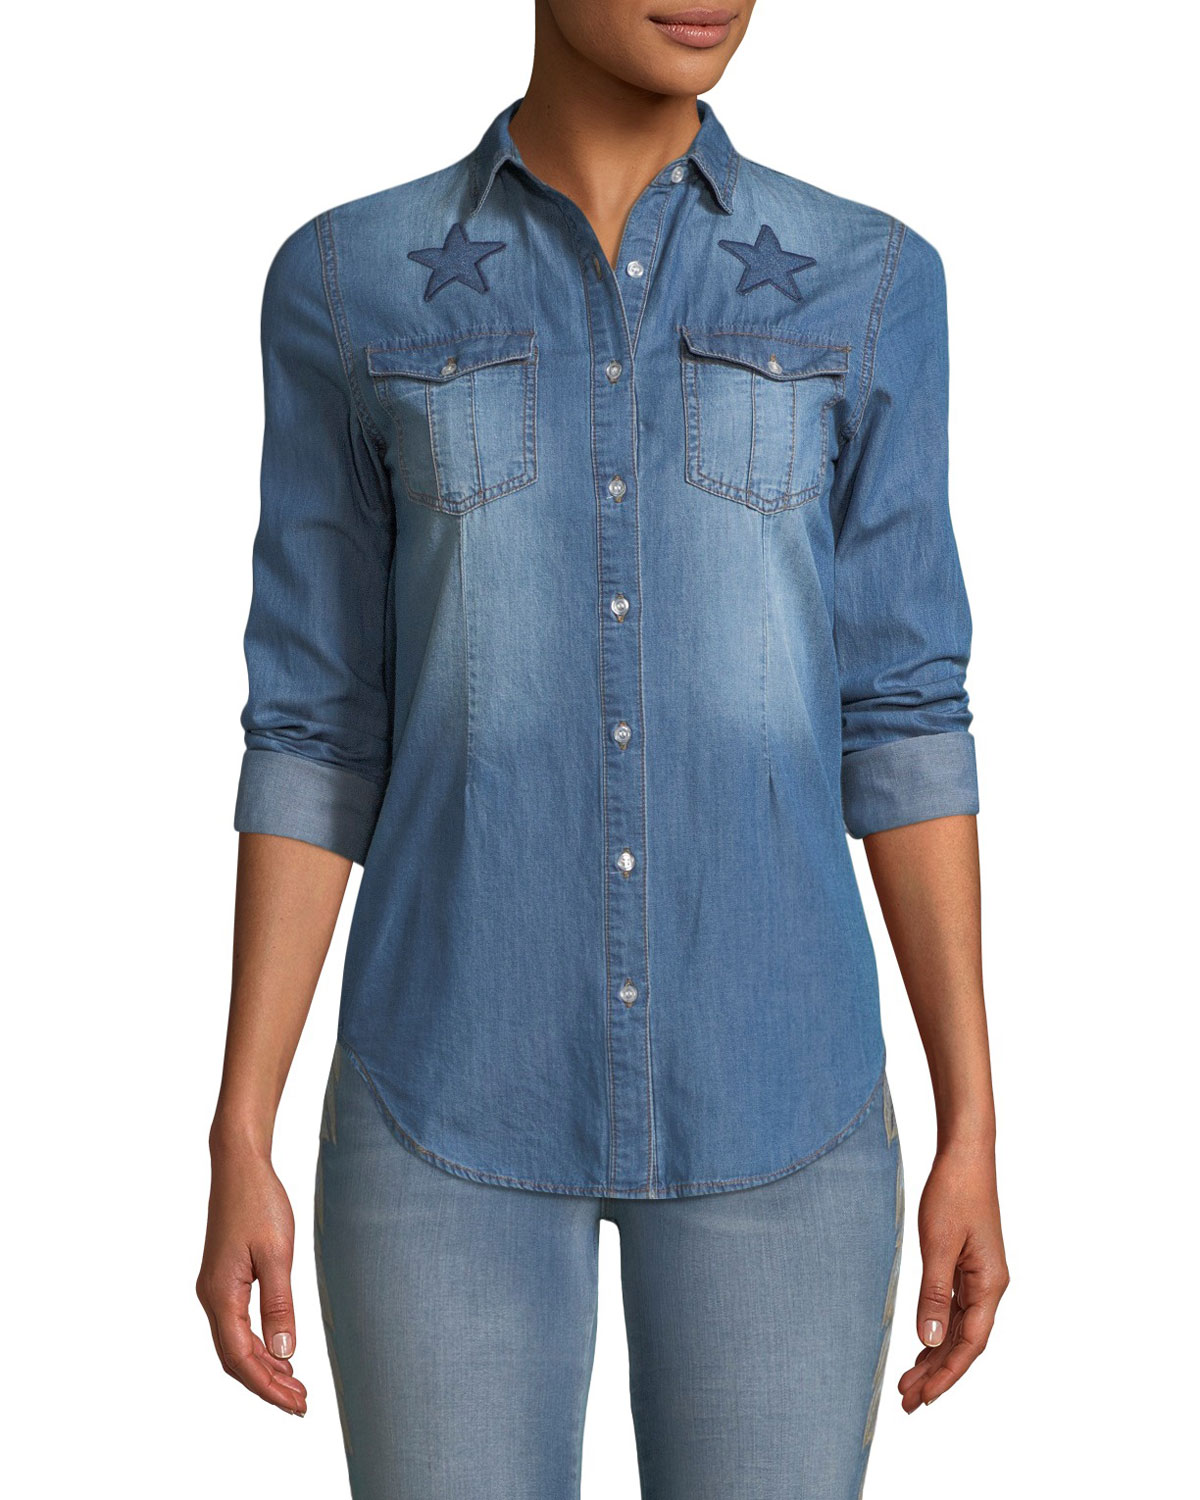 Etienne Marcel BUTTON-FRONT LONG-SLEEVE DENIM SHIRT WITH STARS EMBROIDERY